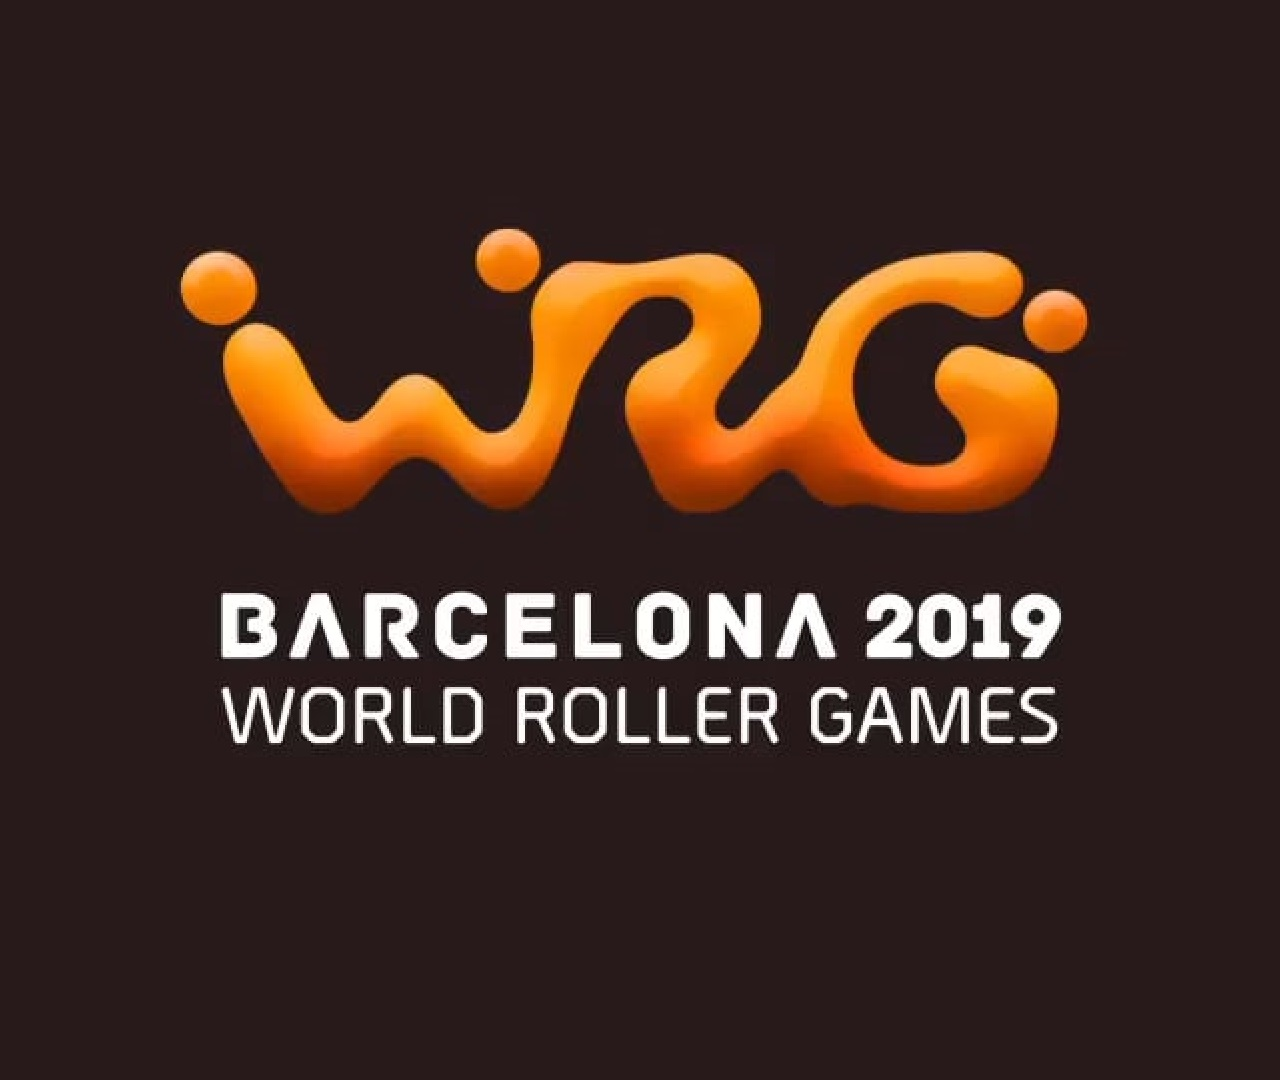 World Roller Games Championships 2019 BARCELONA